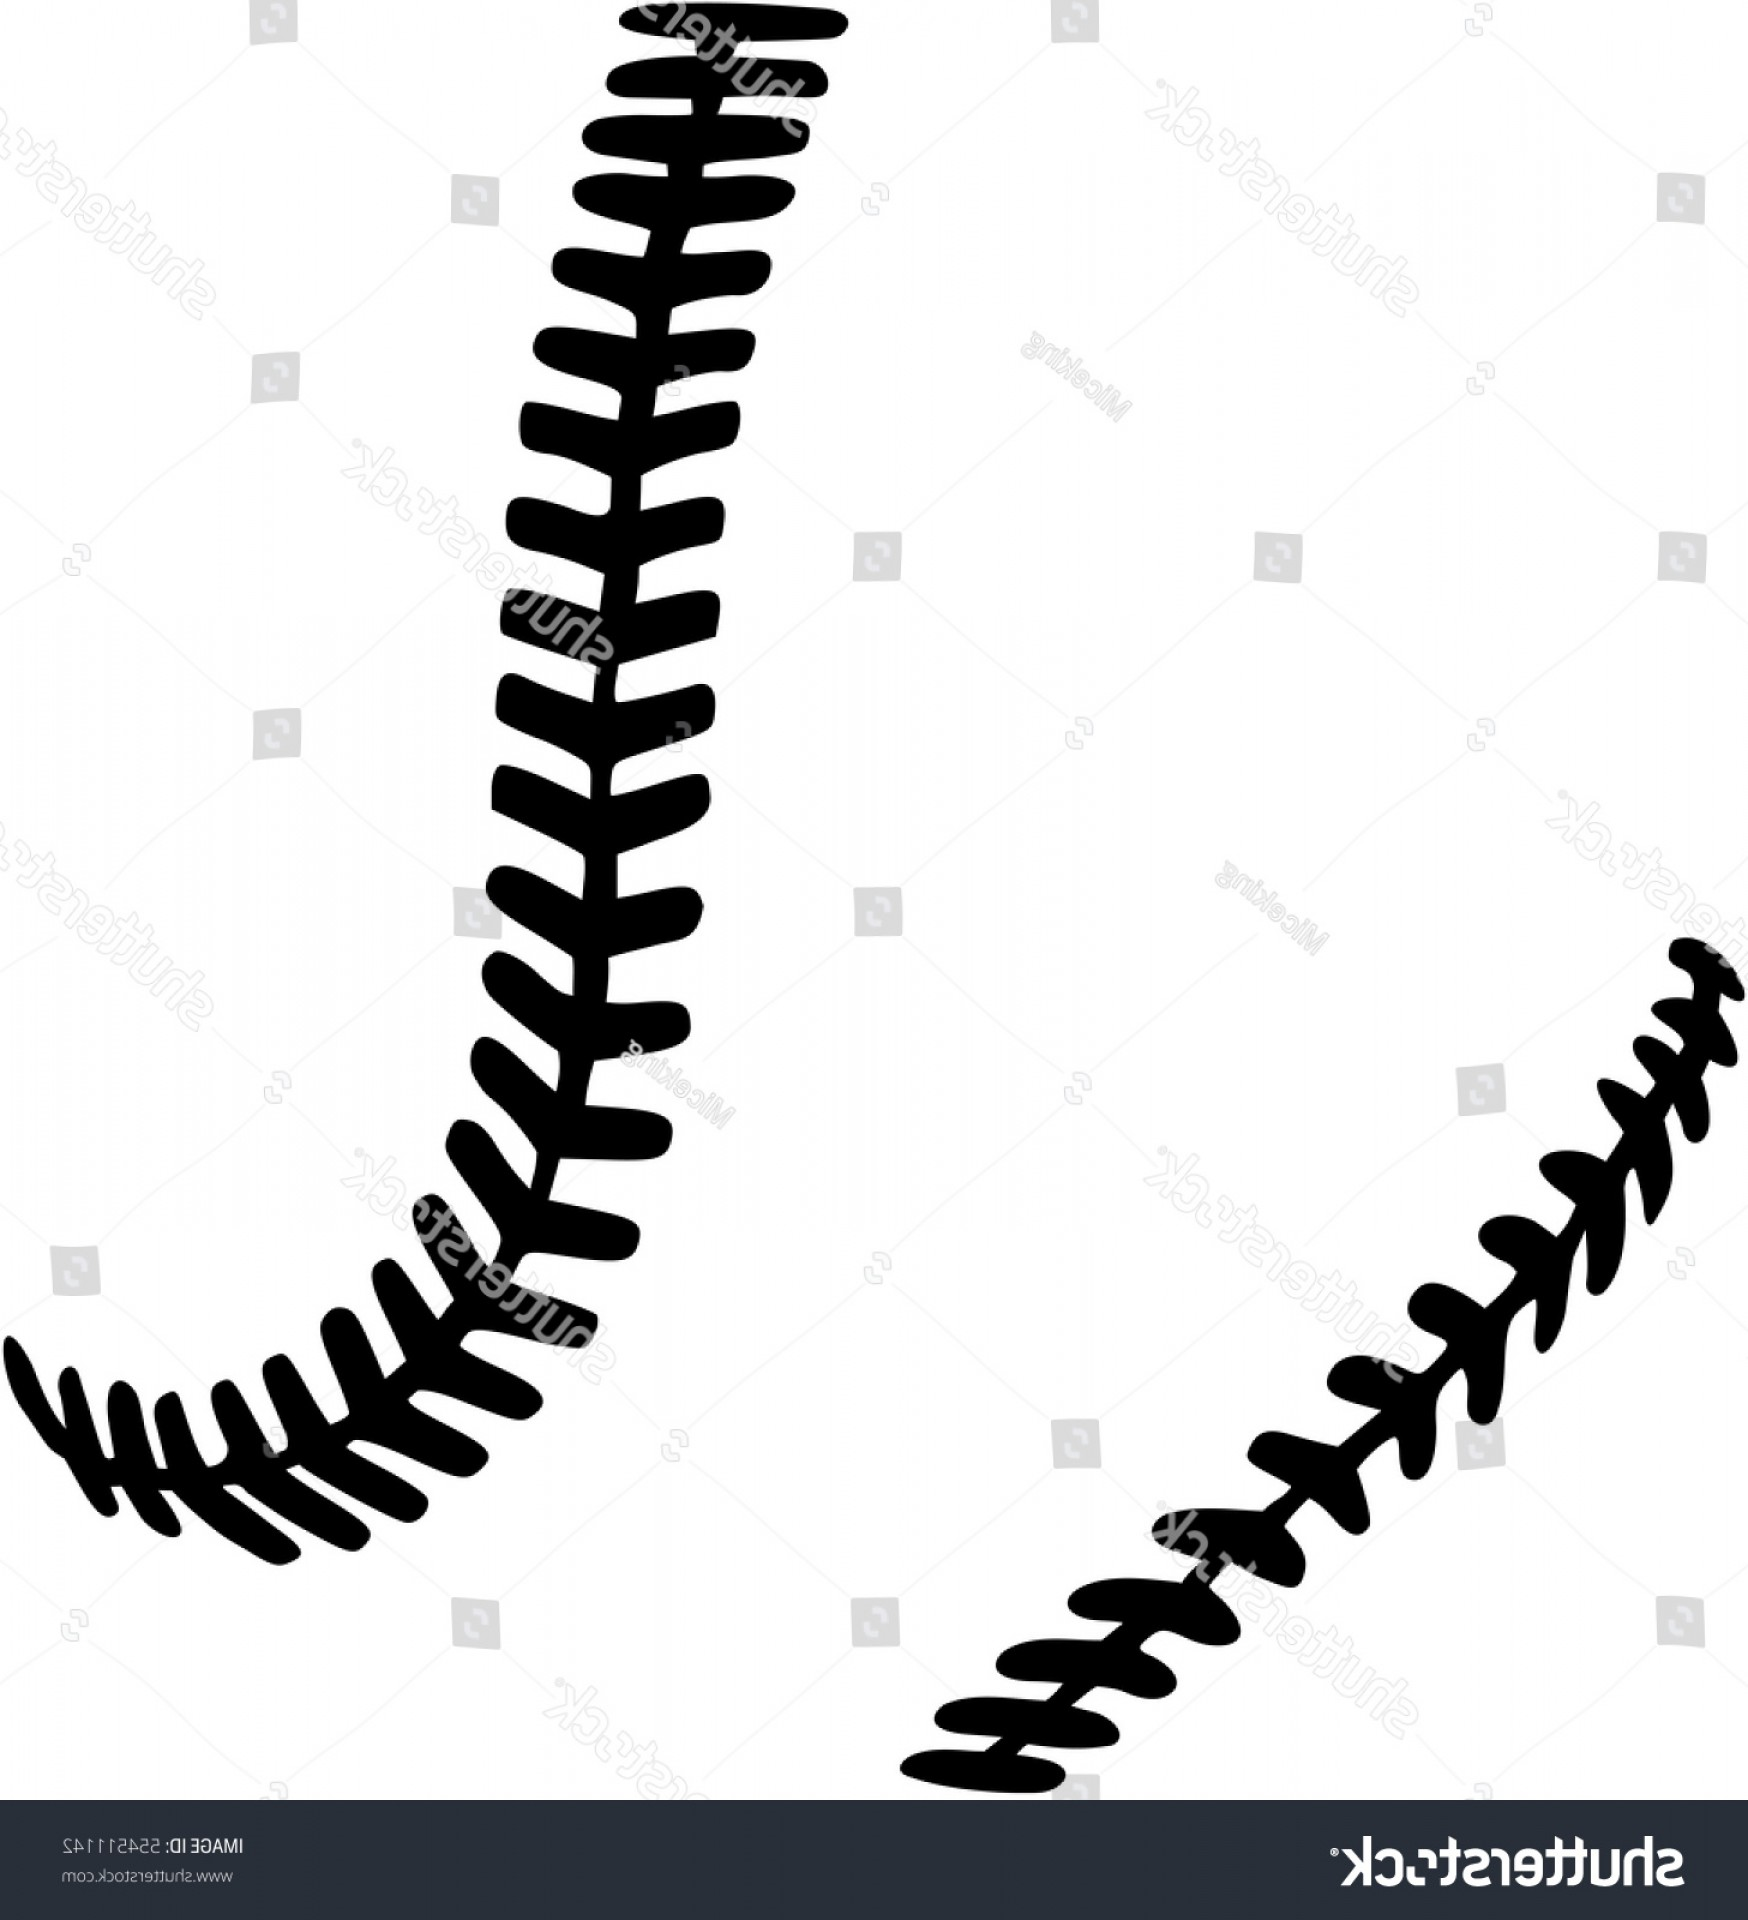 Softball seams clipart clip art transparent download Free Clip Art Of Softball Stitches | GeekChicPro clip art transparent download